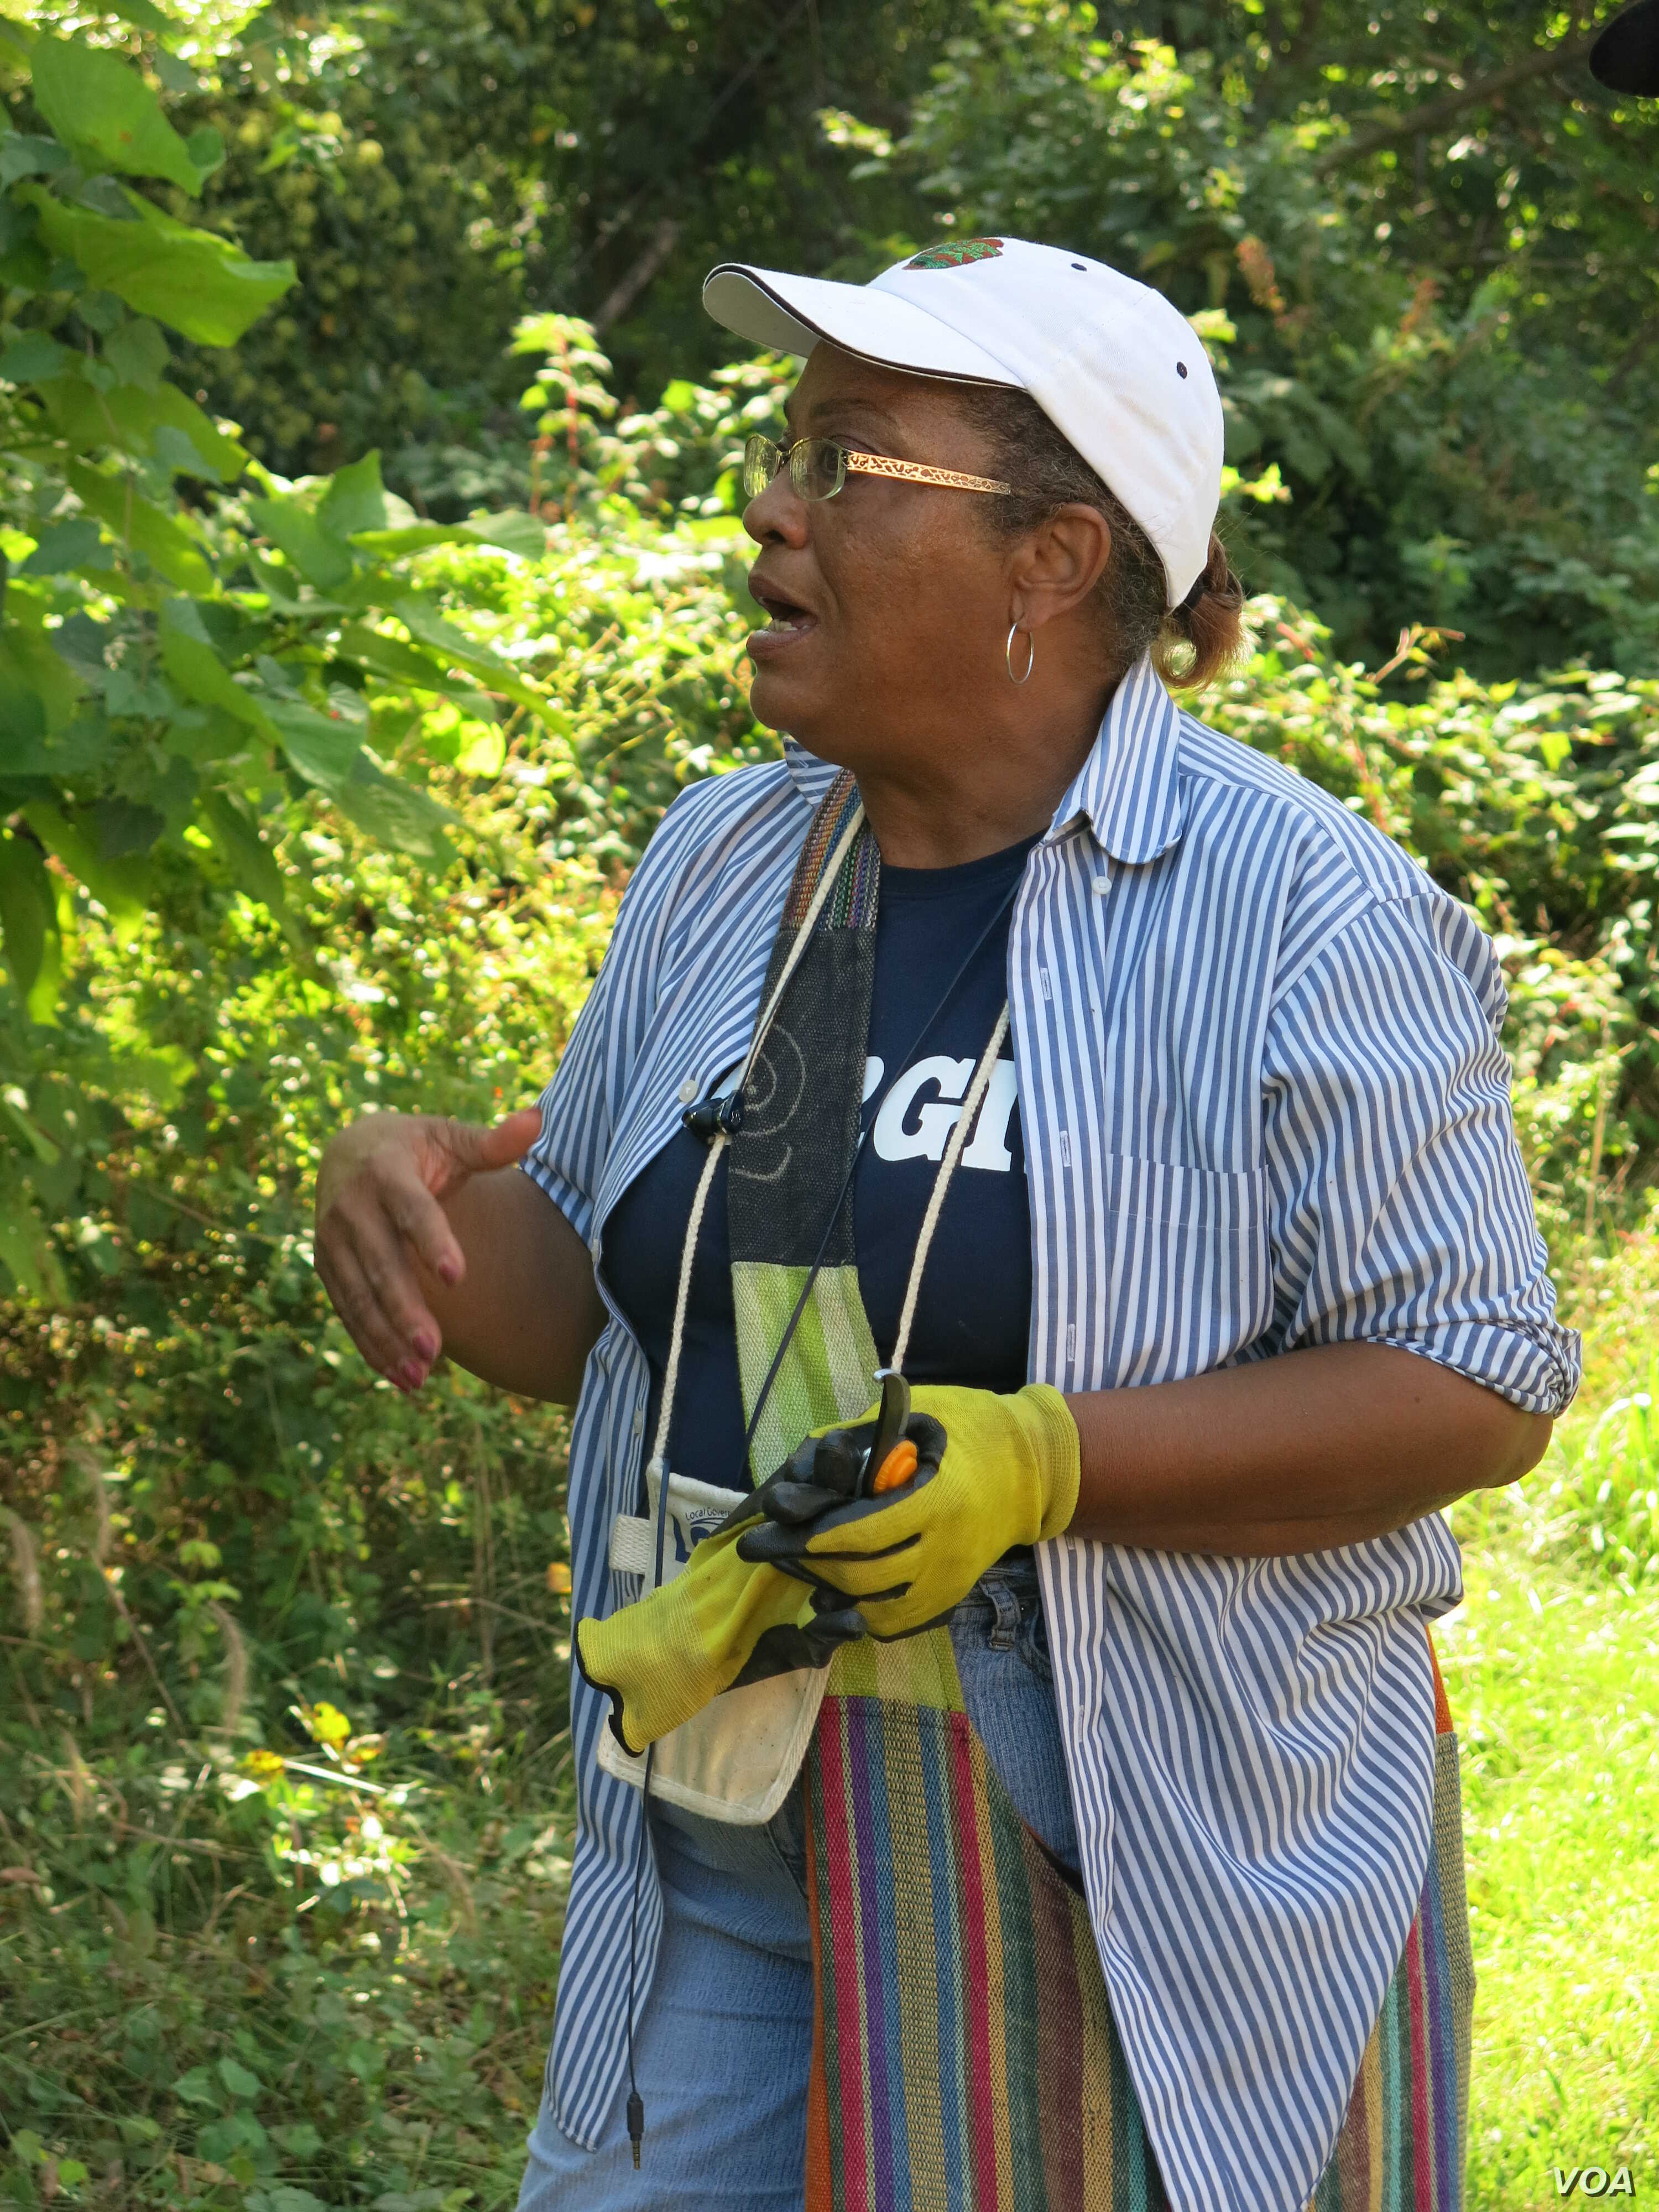 Clippers in hand, Forest Heights Mayor Jacqueline Goodall is on a tree-planting campaign to improve her town's health and welfare. (VOA/R. Skirble)